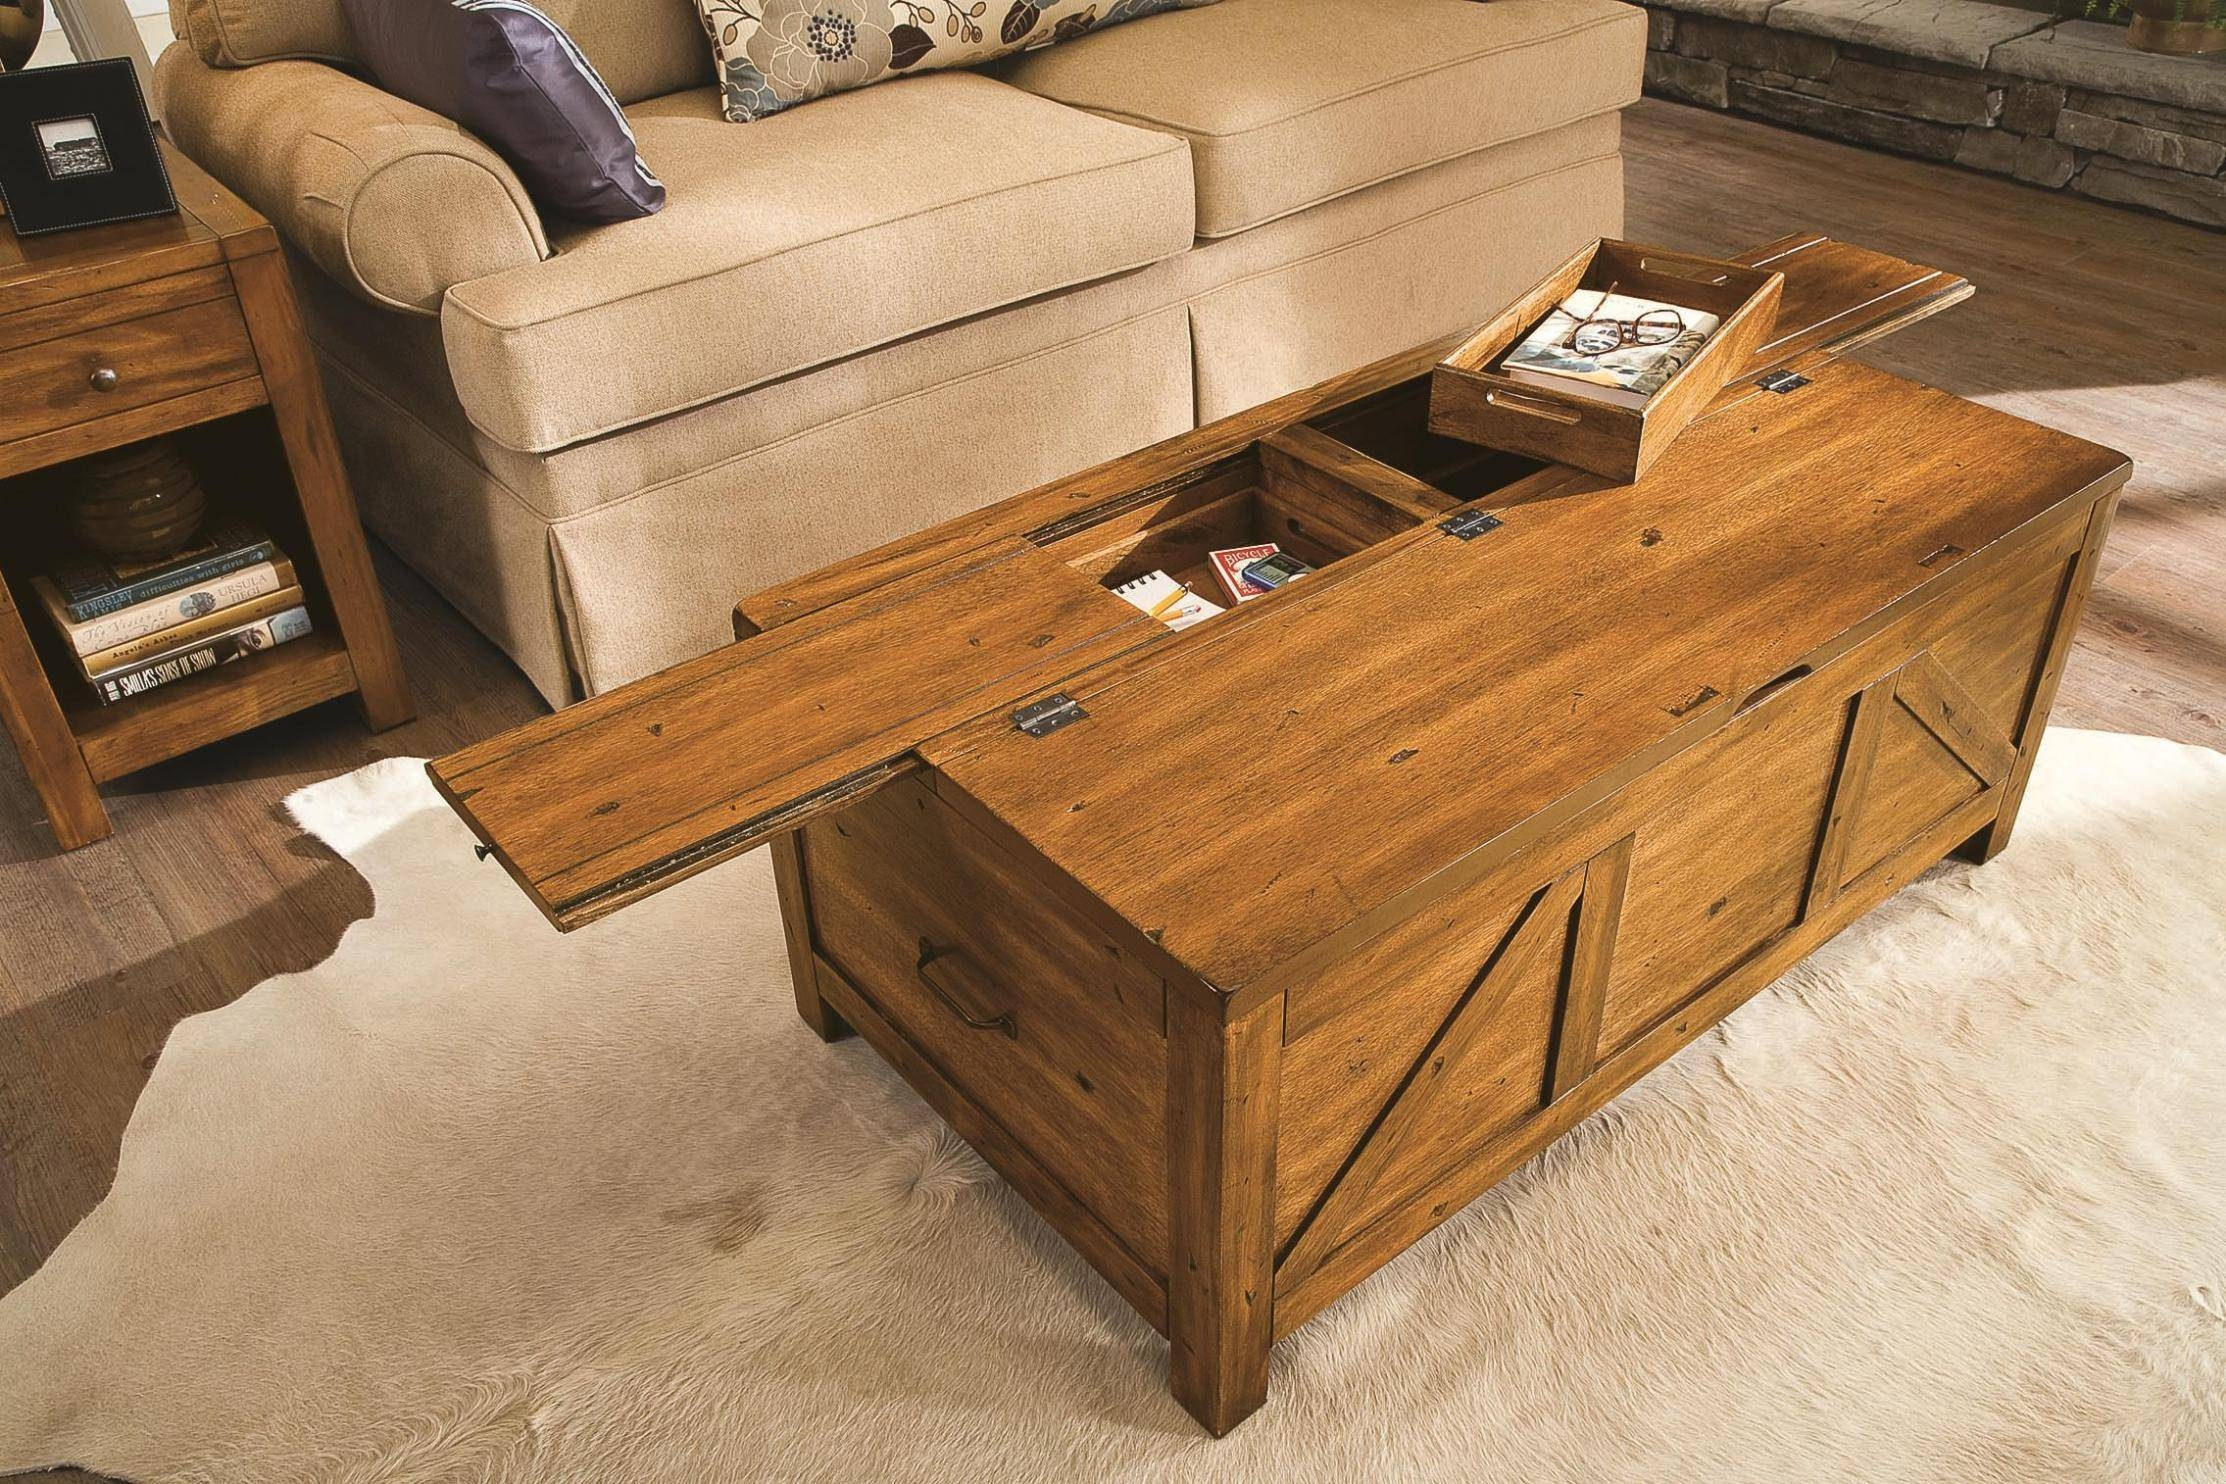 Furniture Home: Coffee Table With Storage Furniture Designs within Coffee Tables With Storage (Image 19 of 30)